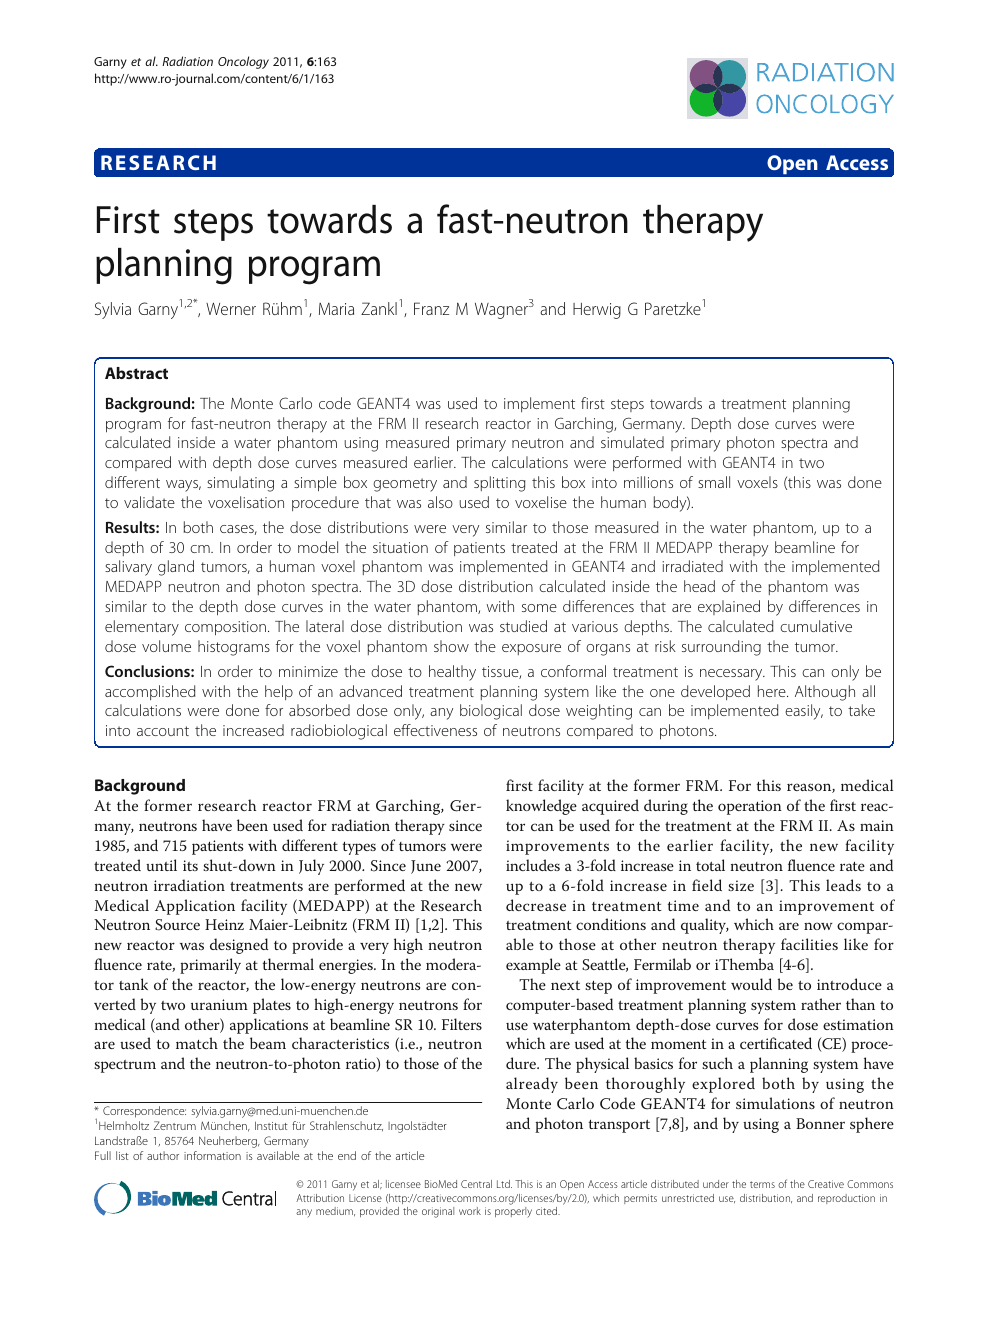 First steps towards a fast-neutron therapy planning program – topic